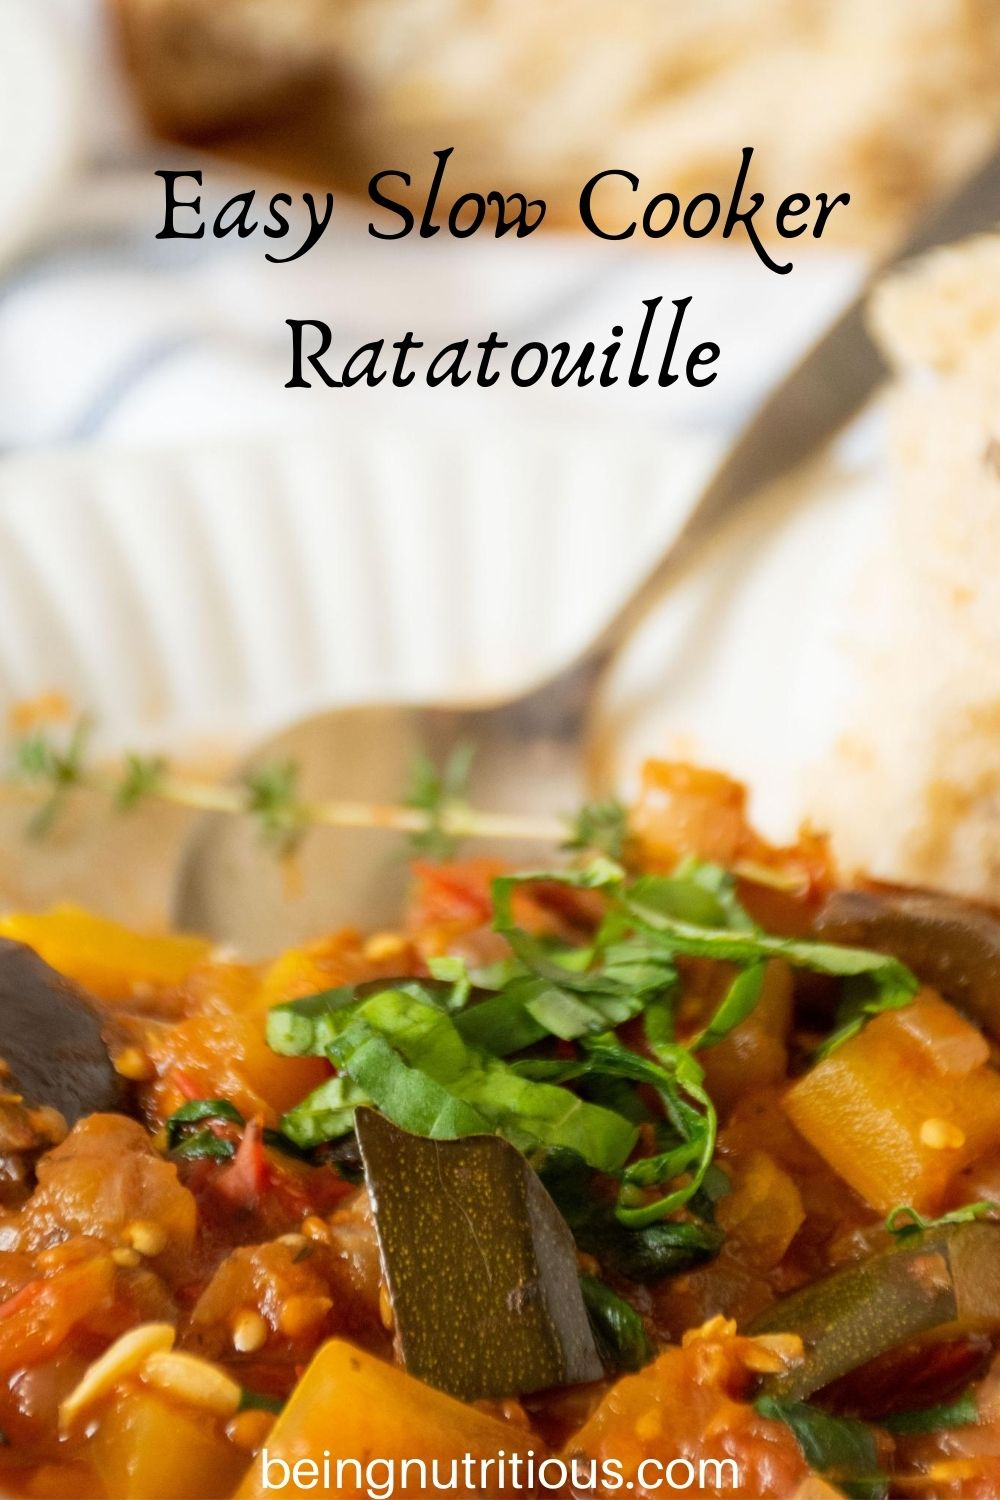 Close up of bowl of ratatouille. Text overlay: Easy Slow Cooker Ratatouille.